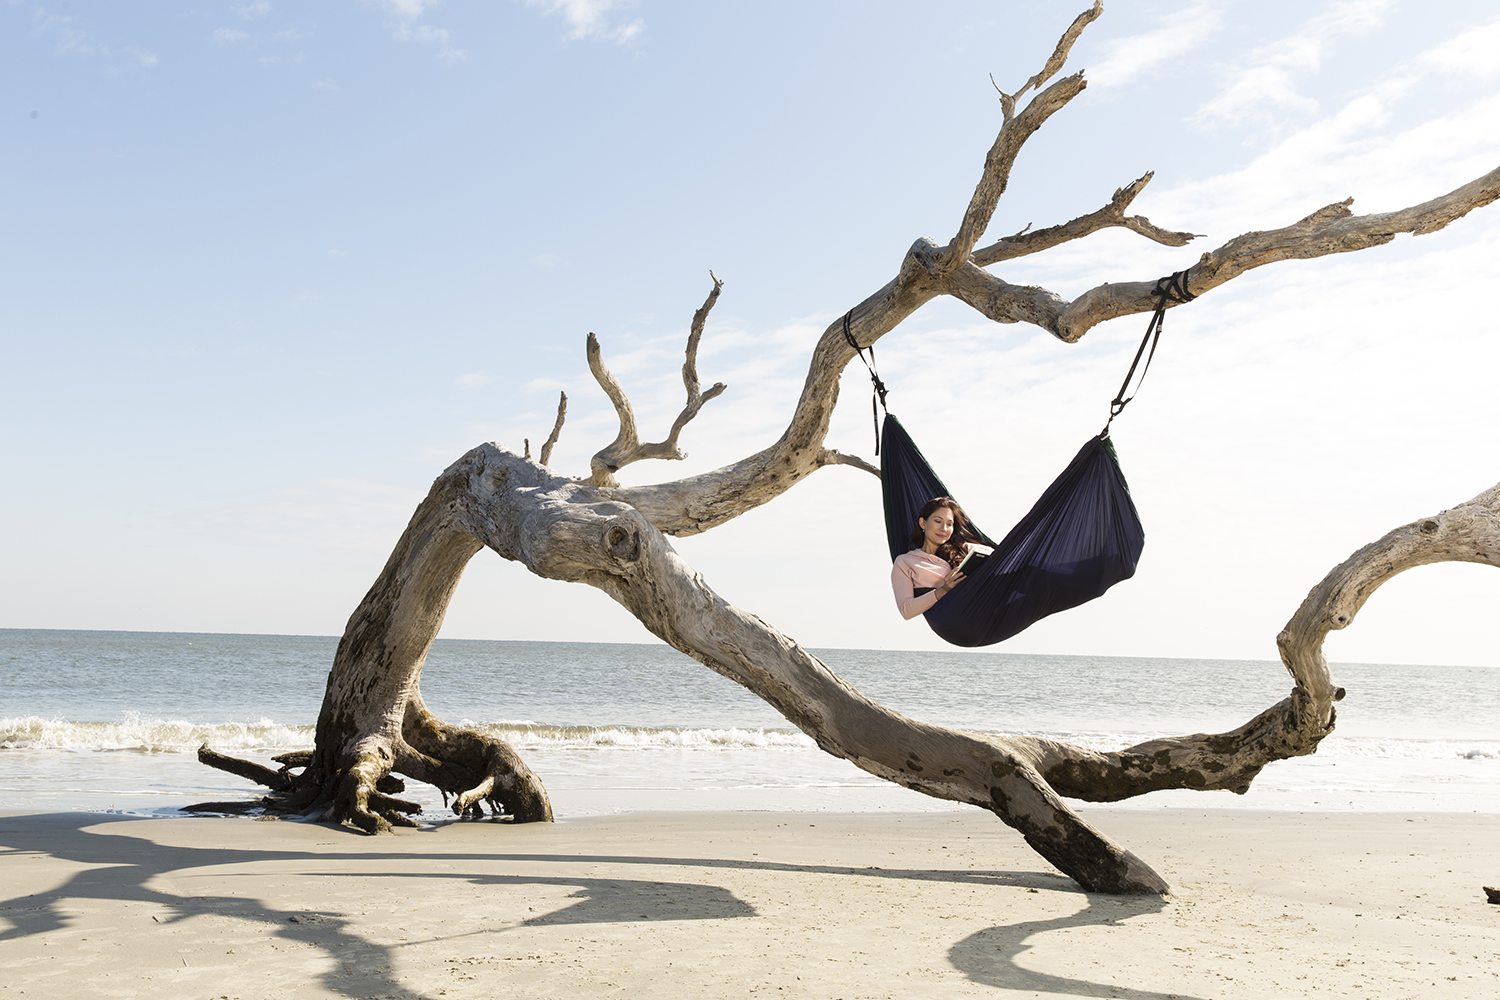 Ryan Hayslip photograph of Amy West in a hammock on driftwood beach in Jekyll Island.